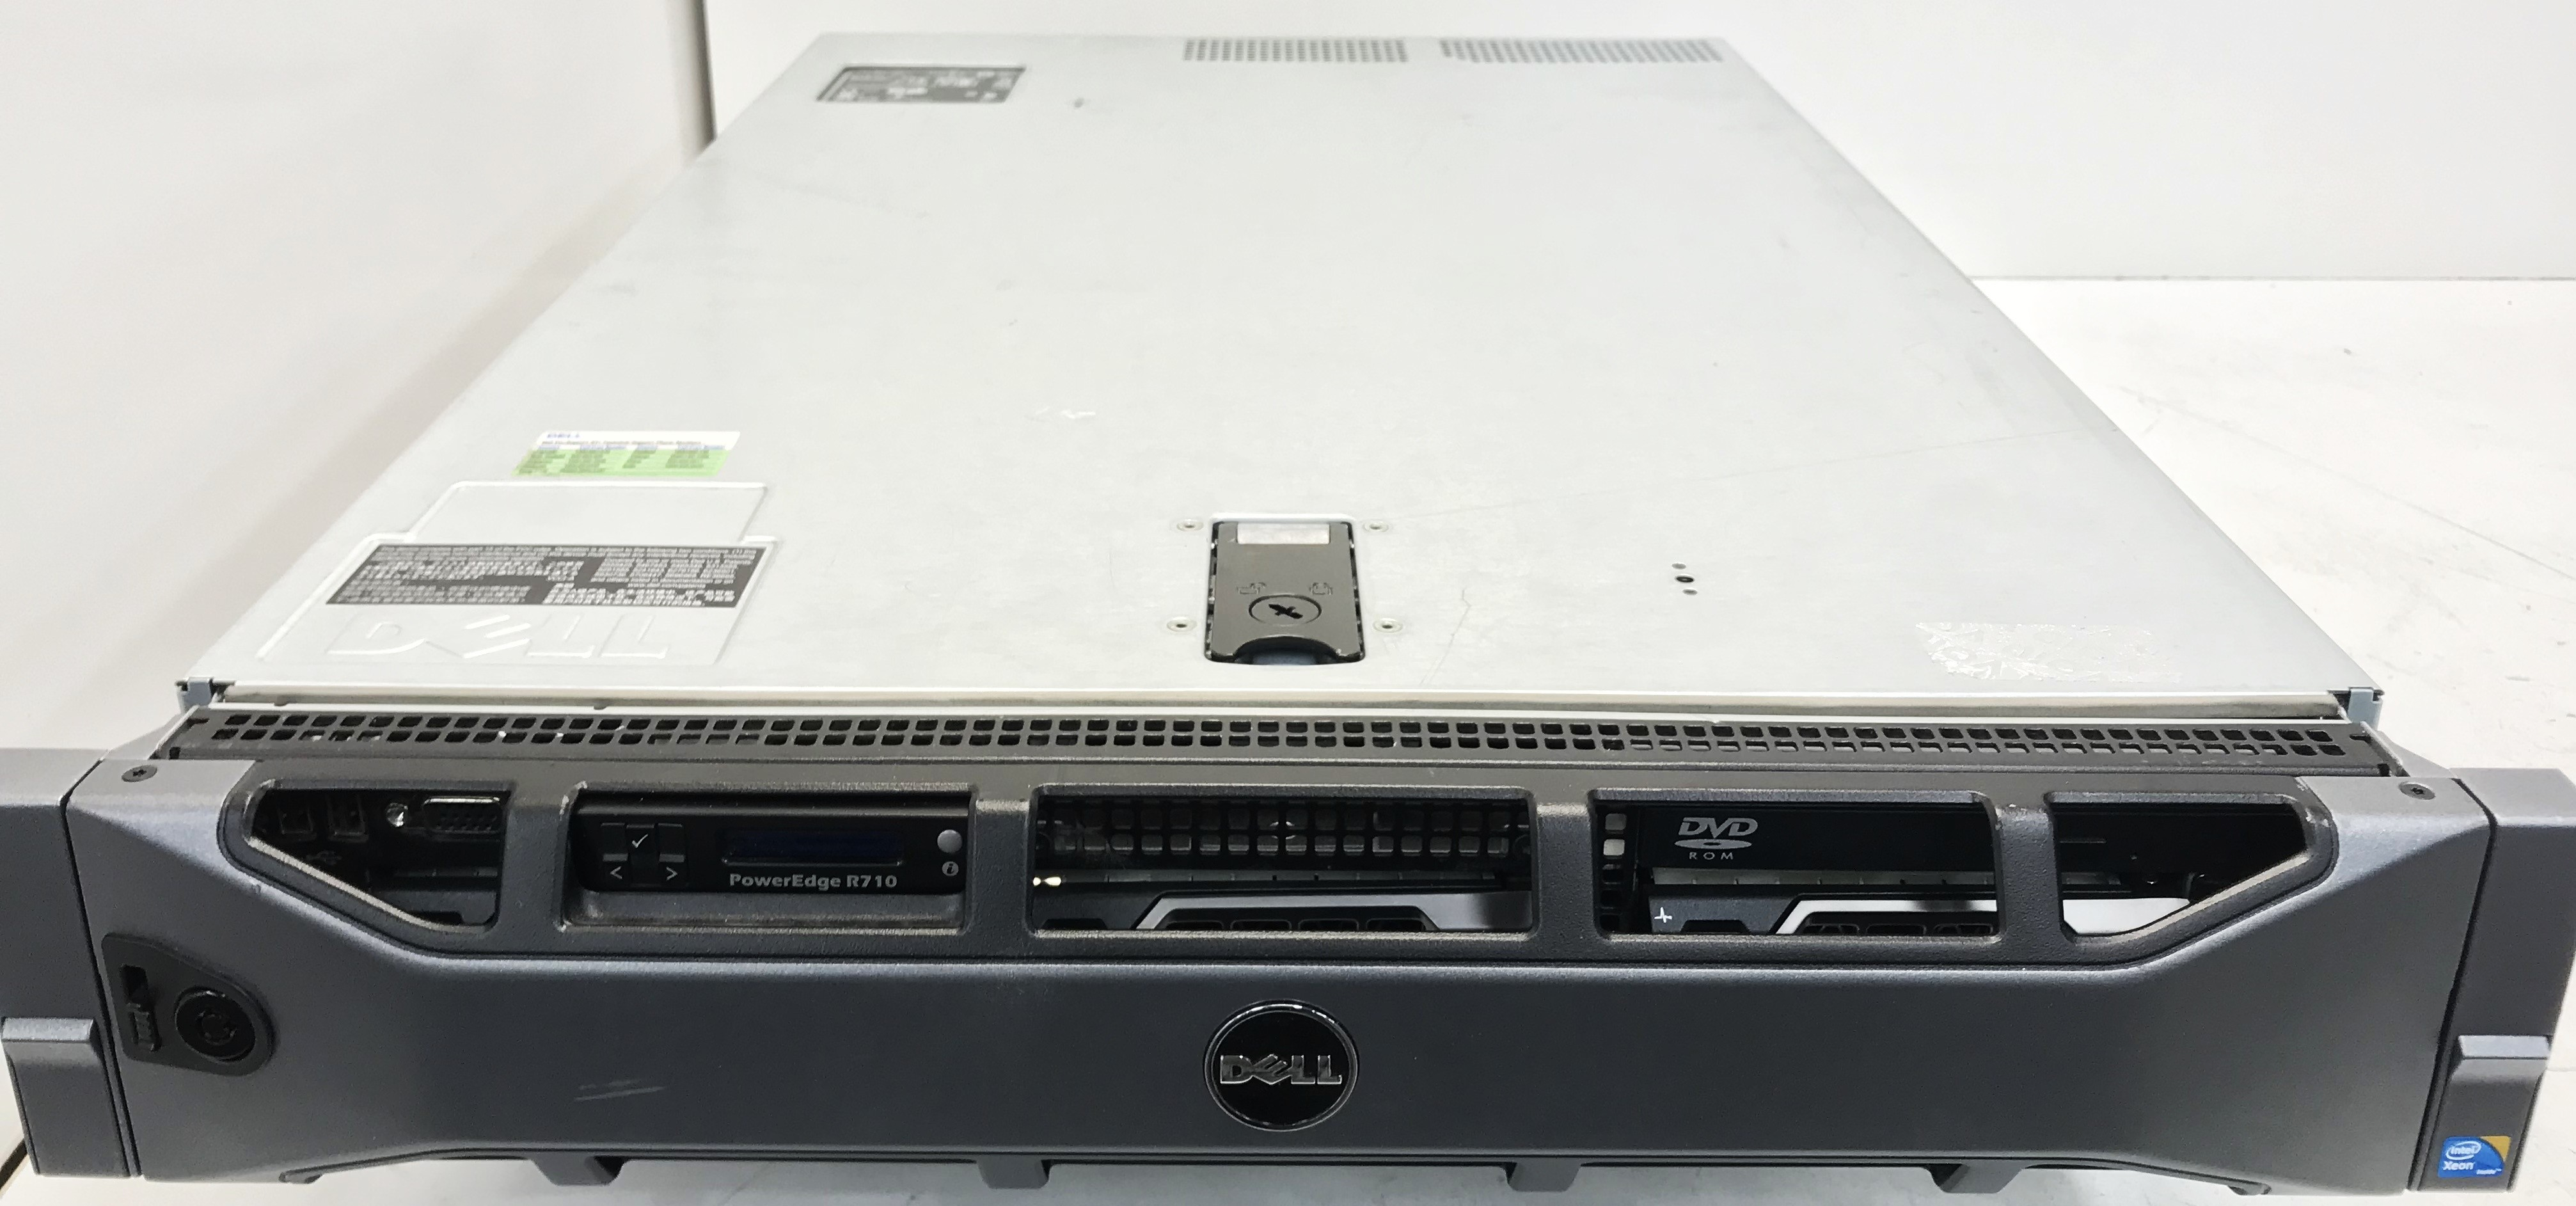 Dell PowerEdge R710 Dual Hexa-Core Xeon X5660 3 2GHz 2 RU Server